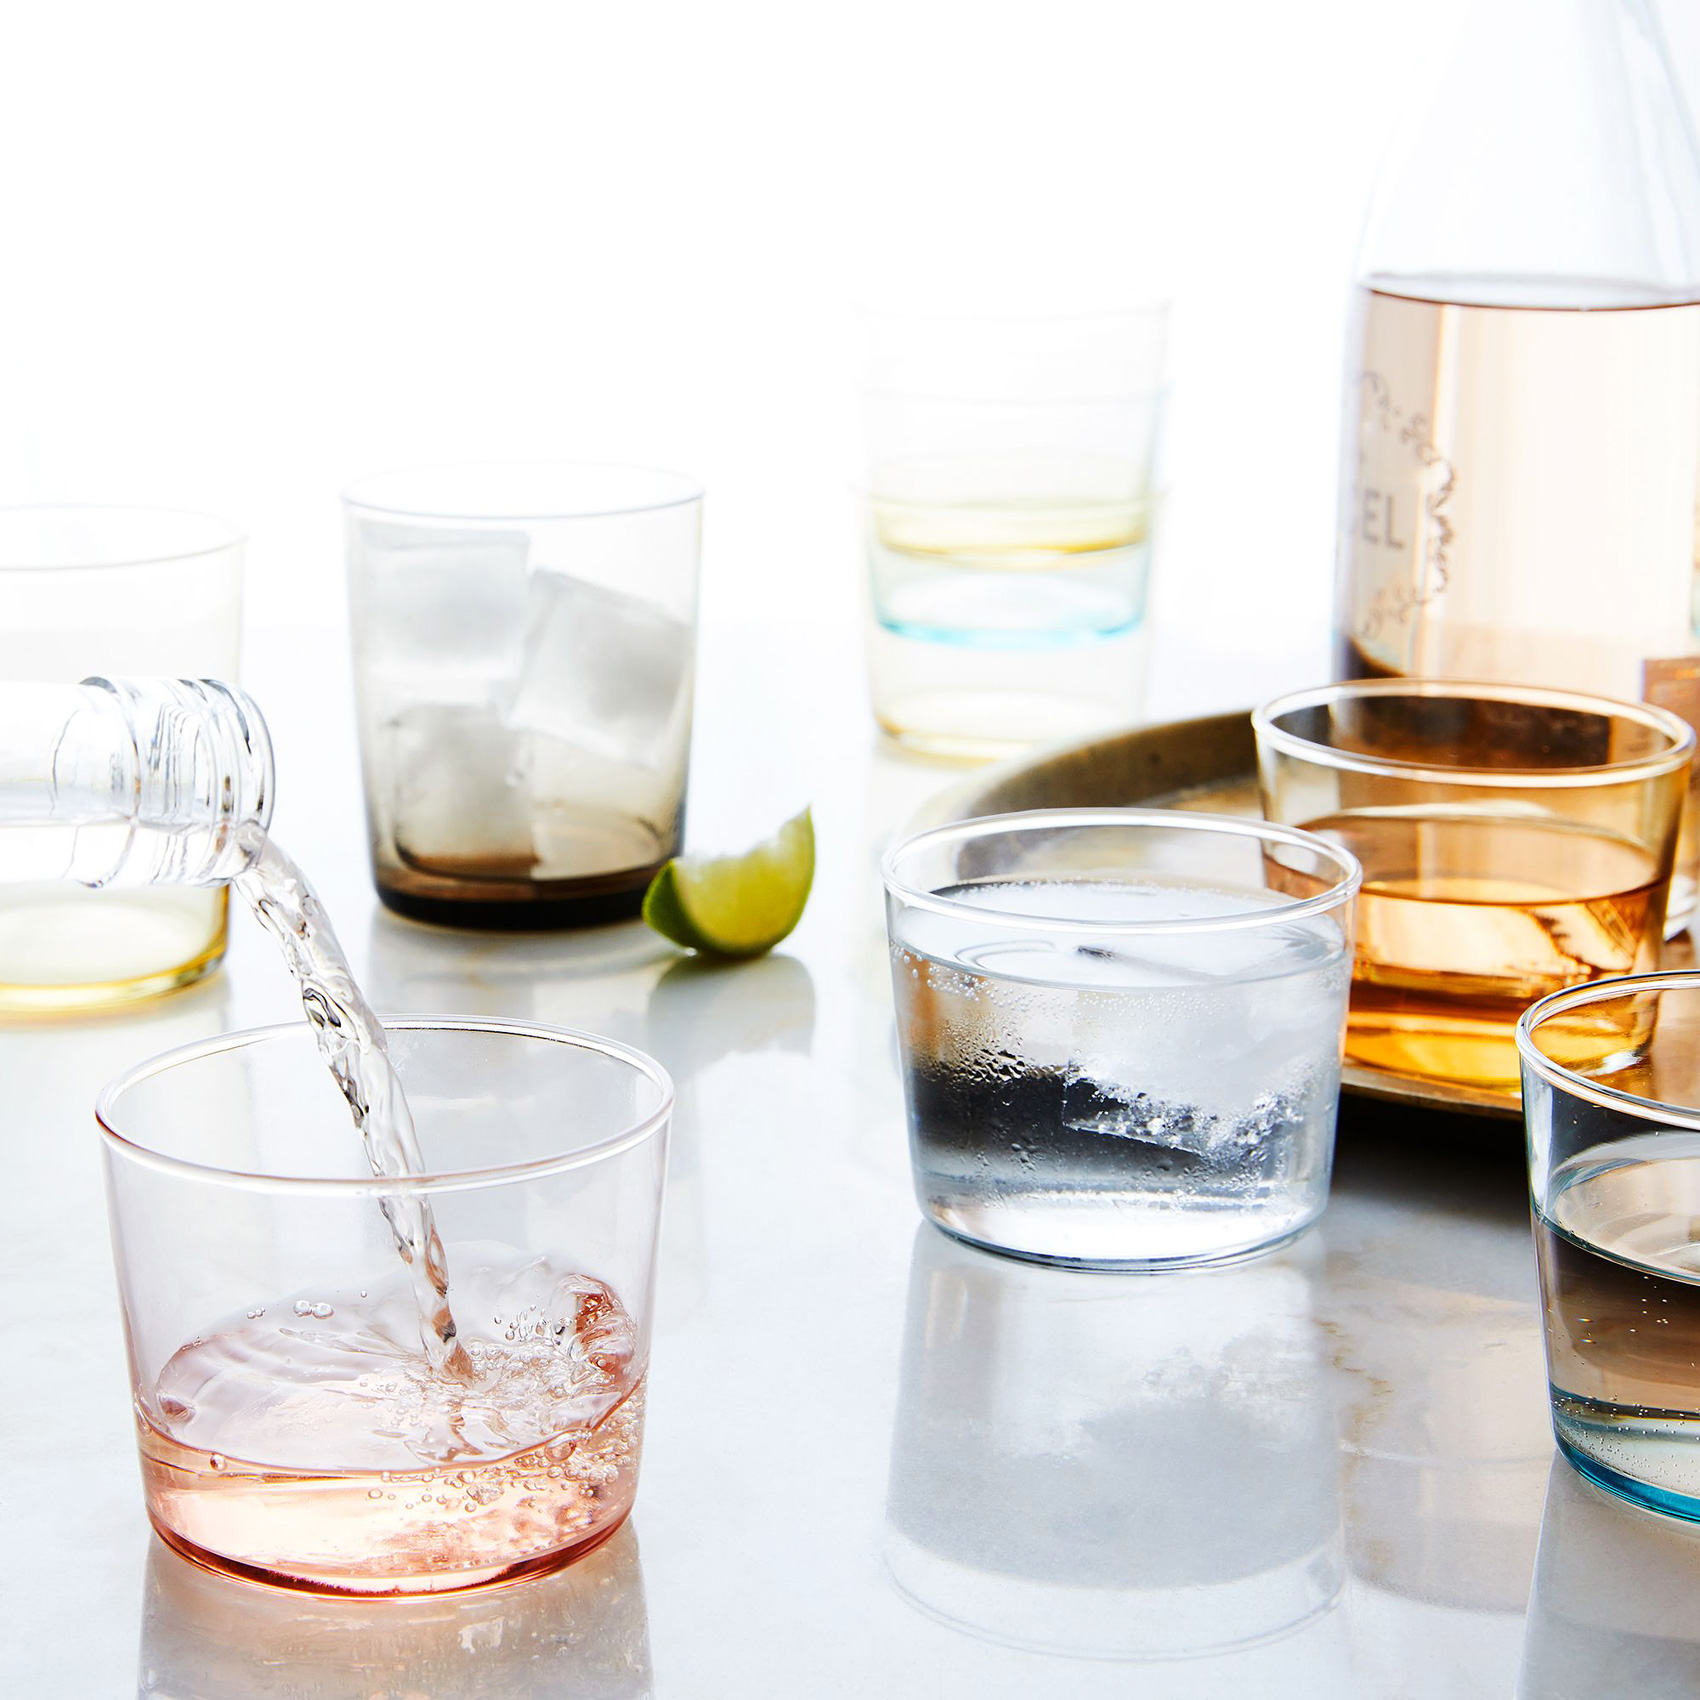 hawkins-new-york_mouthblown-chroma-stackable-glassware_home_ty-mecham_food52